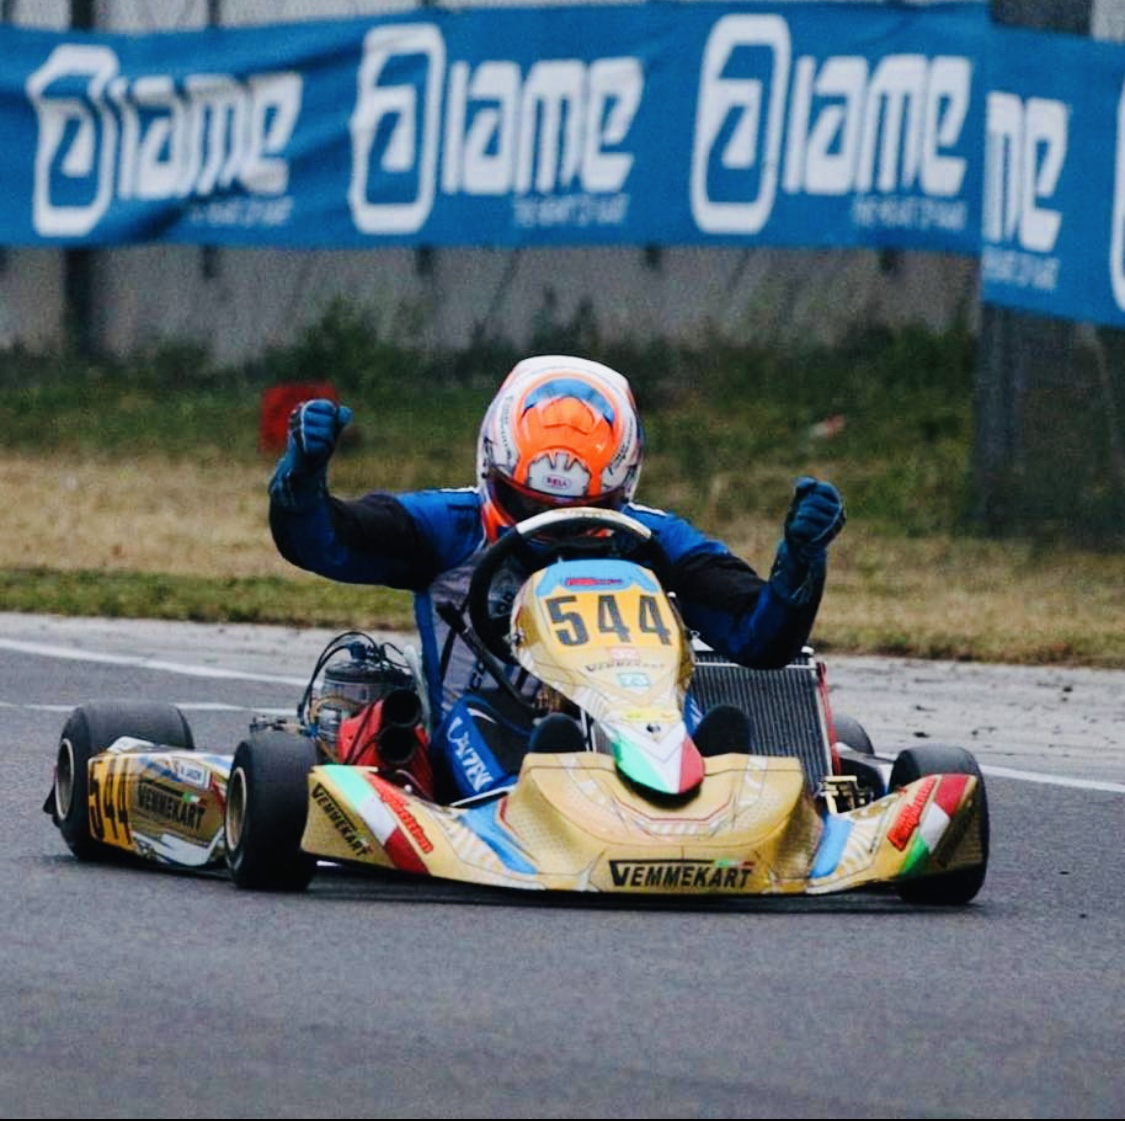 Read more about the article VemmeKart factory : announces the return of William Lanzeni to the KZ category.